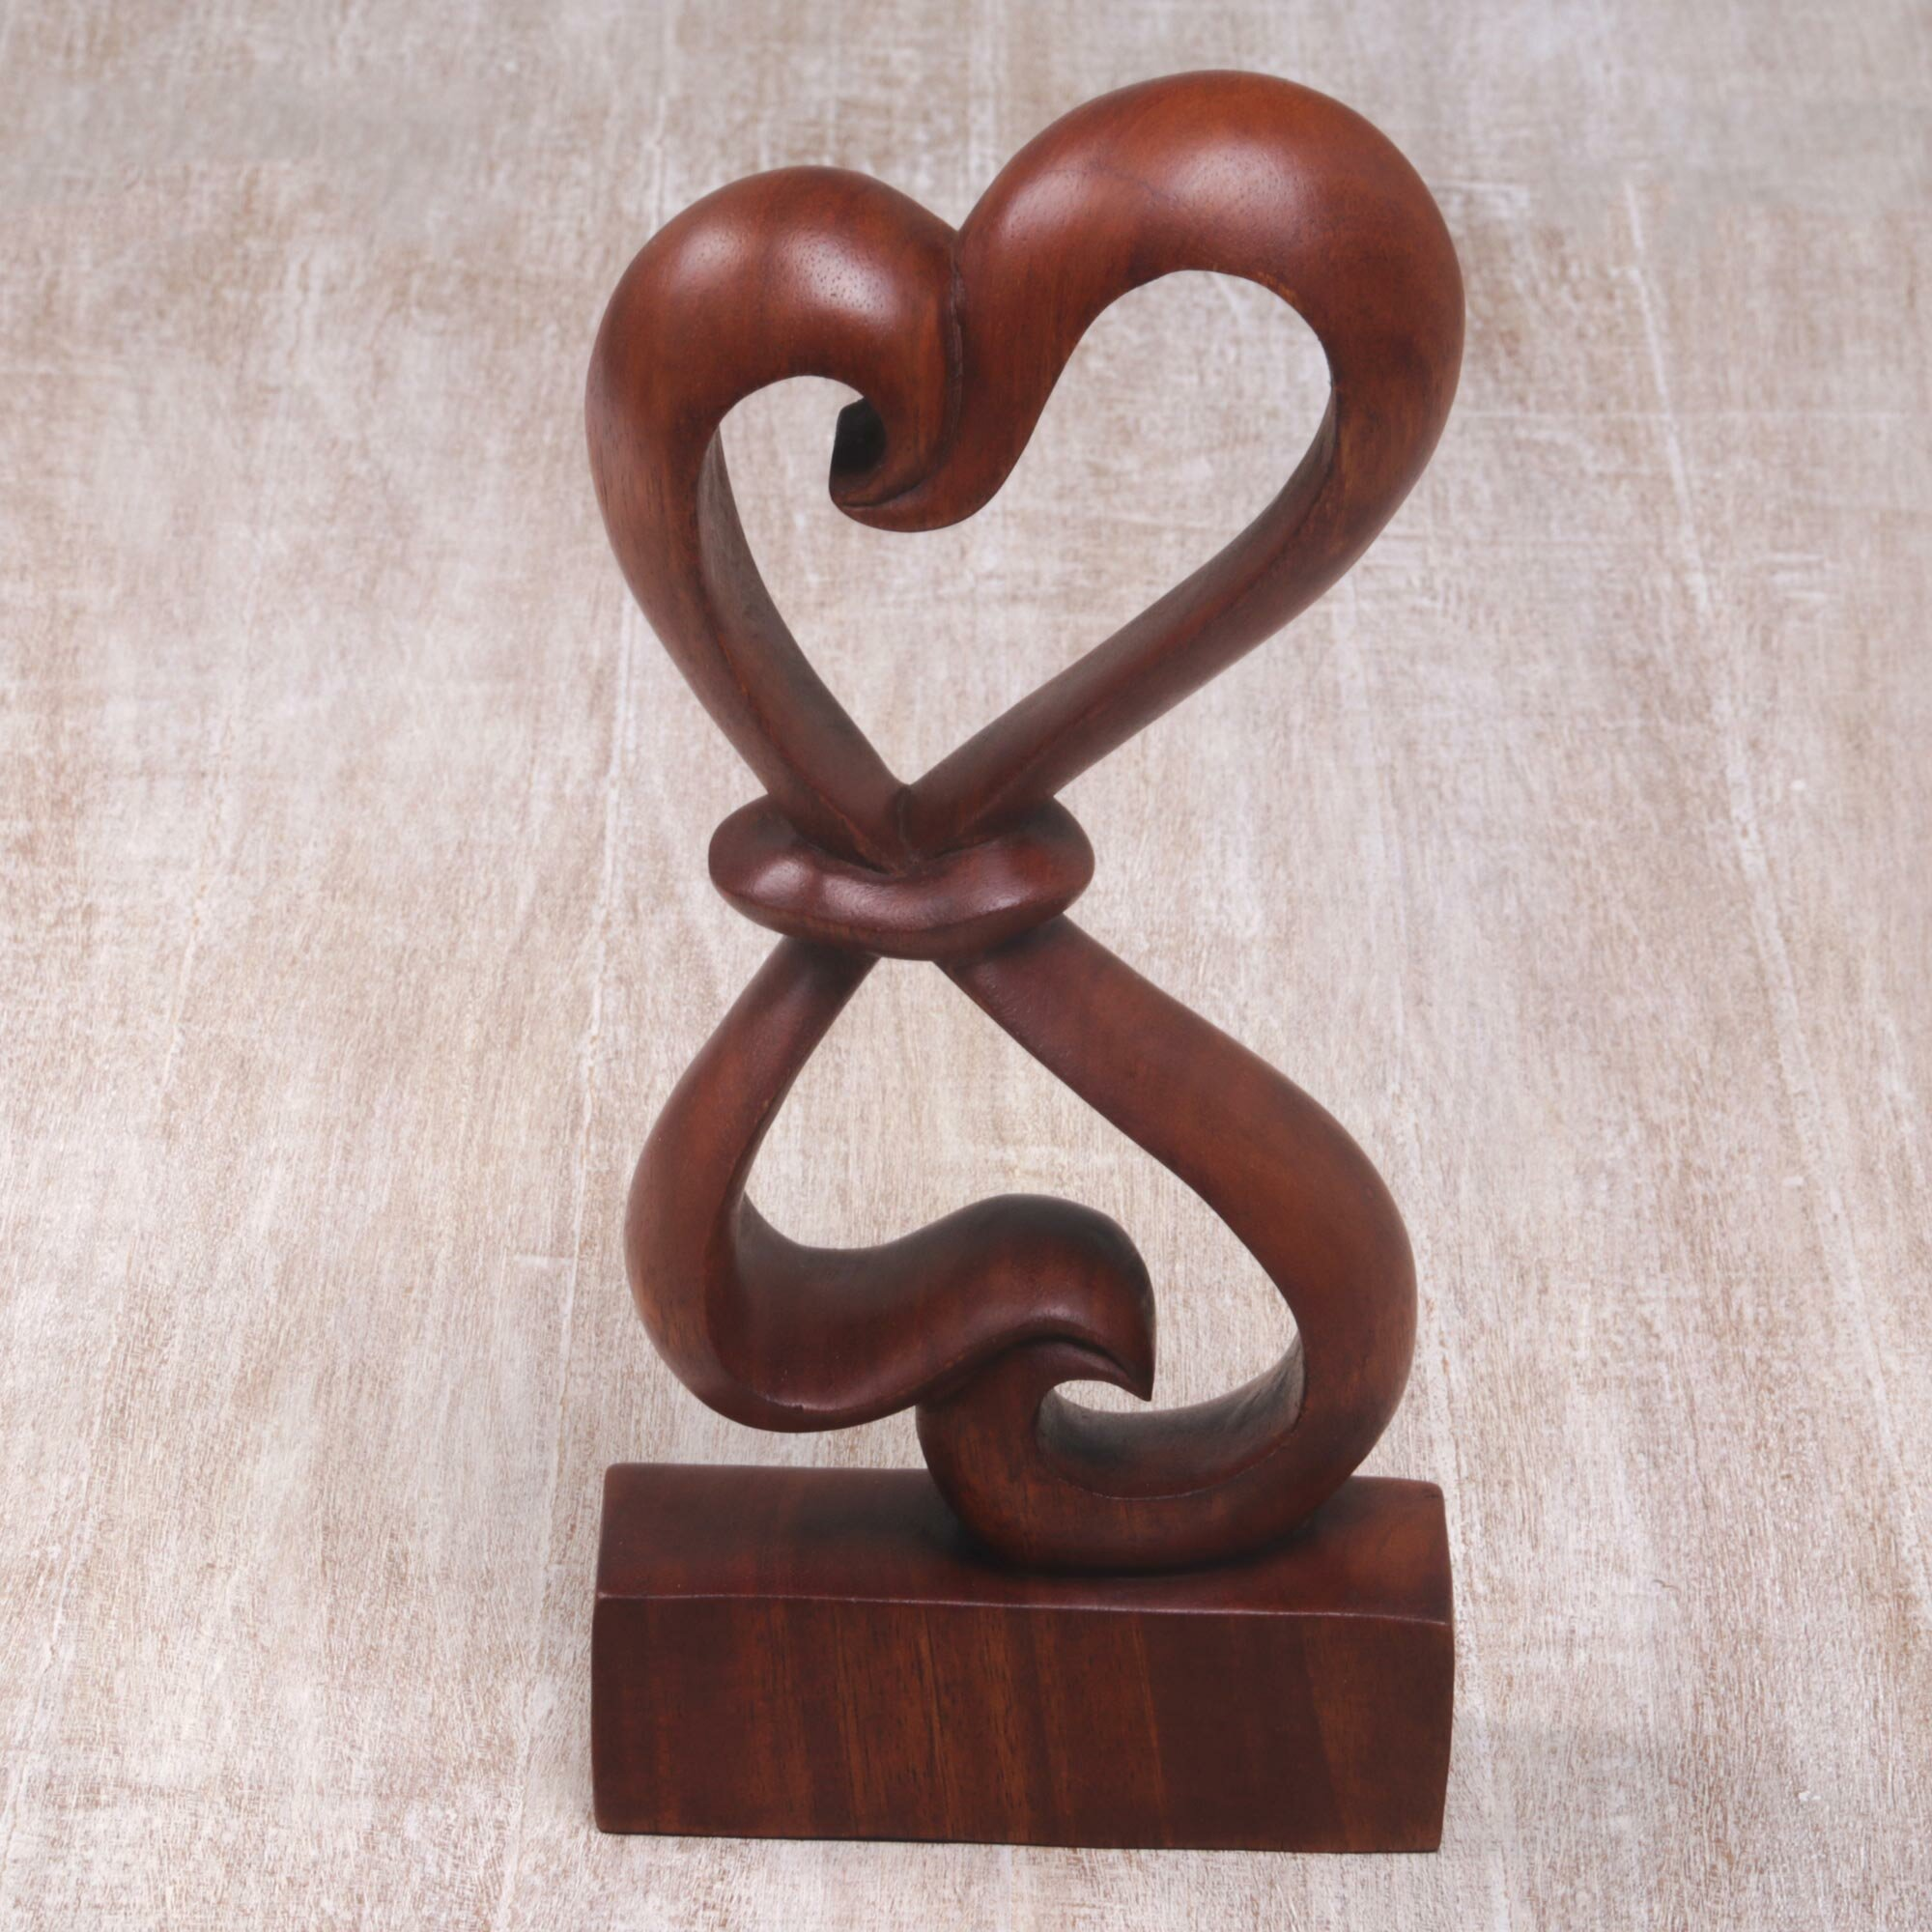 World Menagerie Congdon Heartfelt Wood Indonesia Sculpture Wayfair